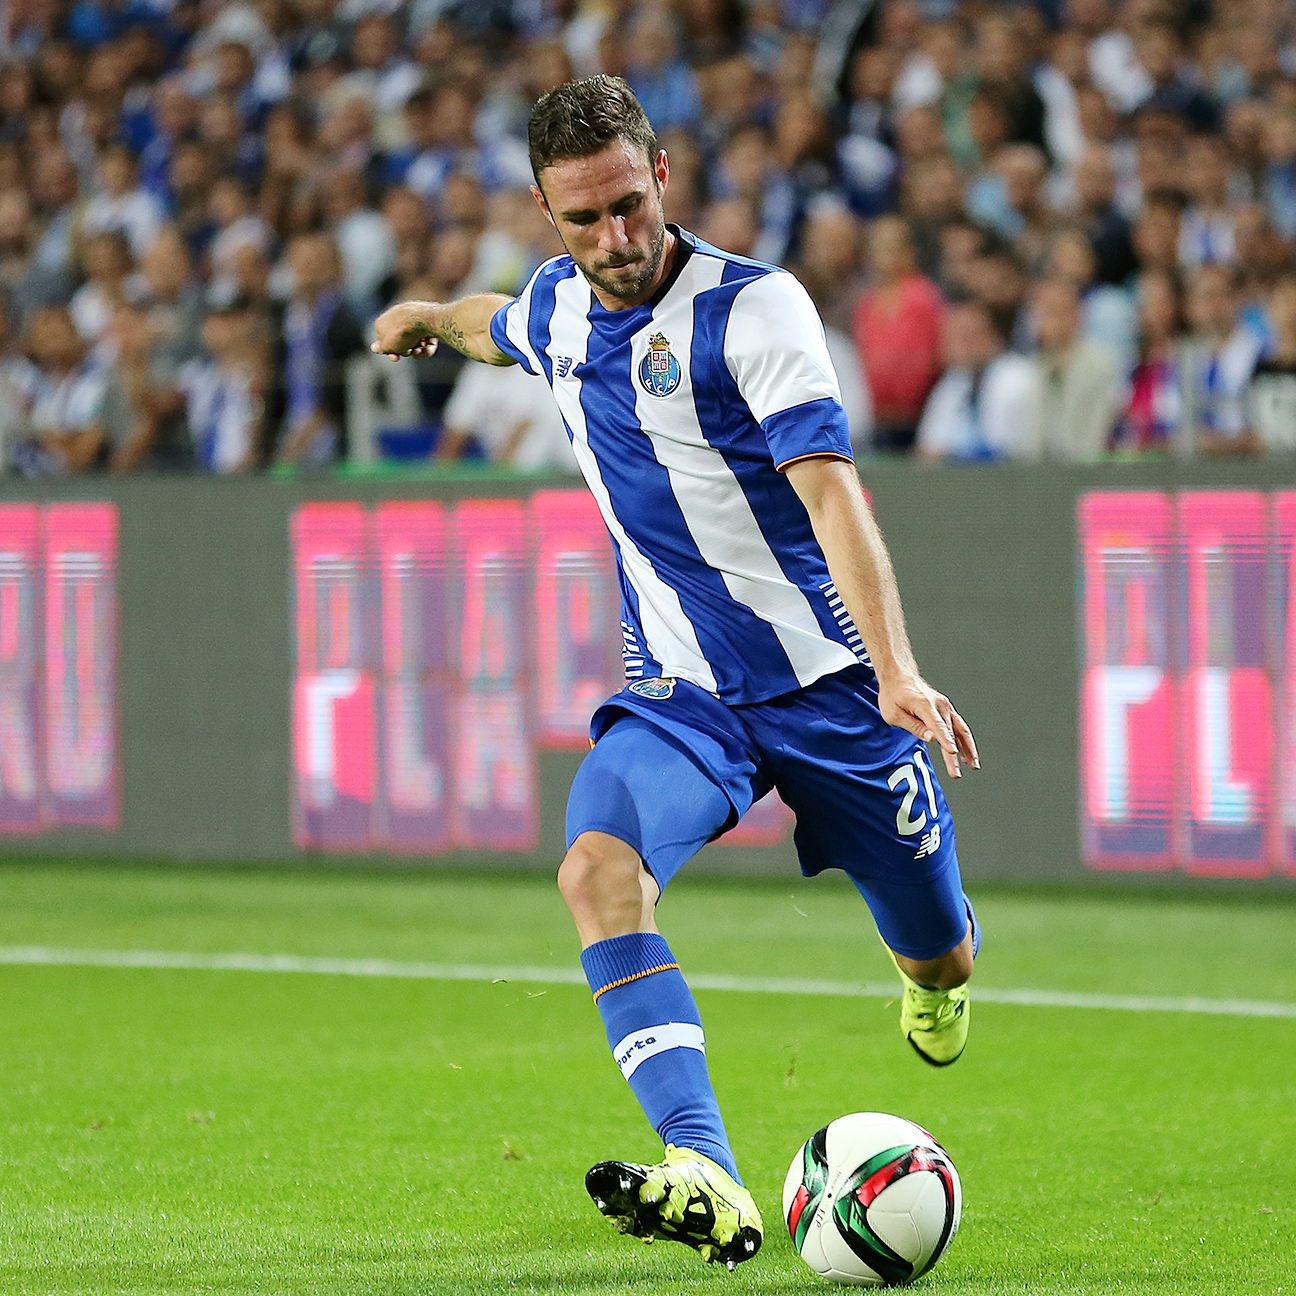 Miguel Layun went the distance in Porto's 1-0 win over rivals Benfica.